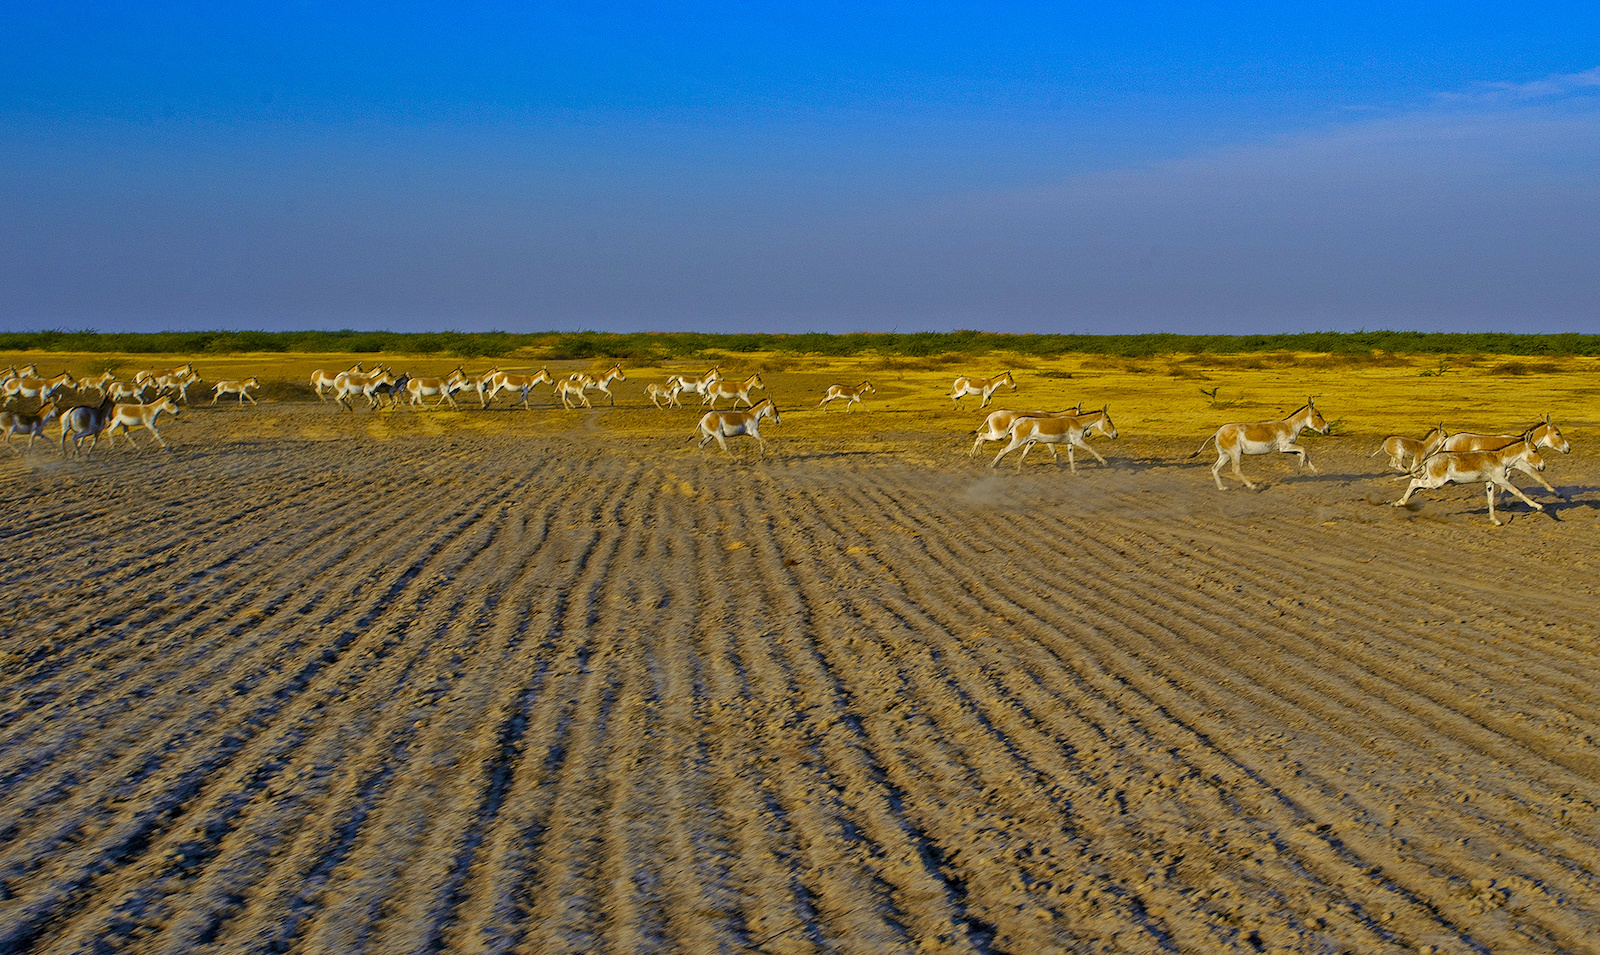 The colouration of the Indian wild ass might not provide perfect camouflage, but it helps them blend into the landscape of the Little Rann of Kutch. Photo: Dhritiman Mukherjee  A herd of wild asses in the Little Rann of Kutch can often comprise as many as 30 animals, ranging from newborns to adults. Cover Photo: Dhritiman Mukherjee